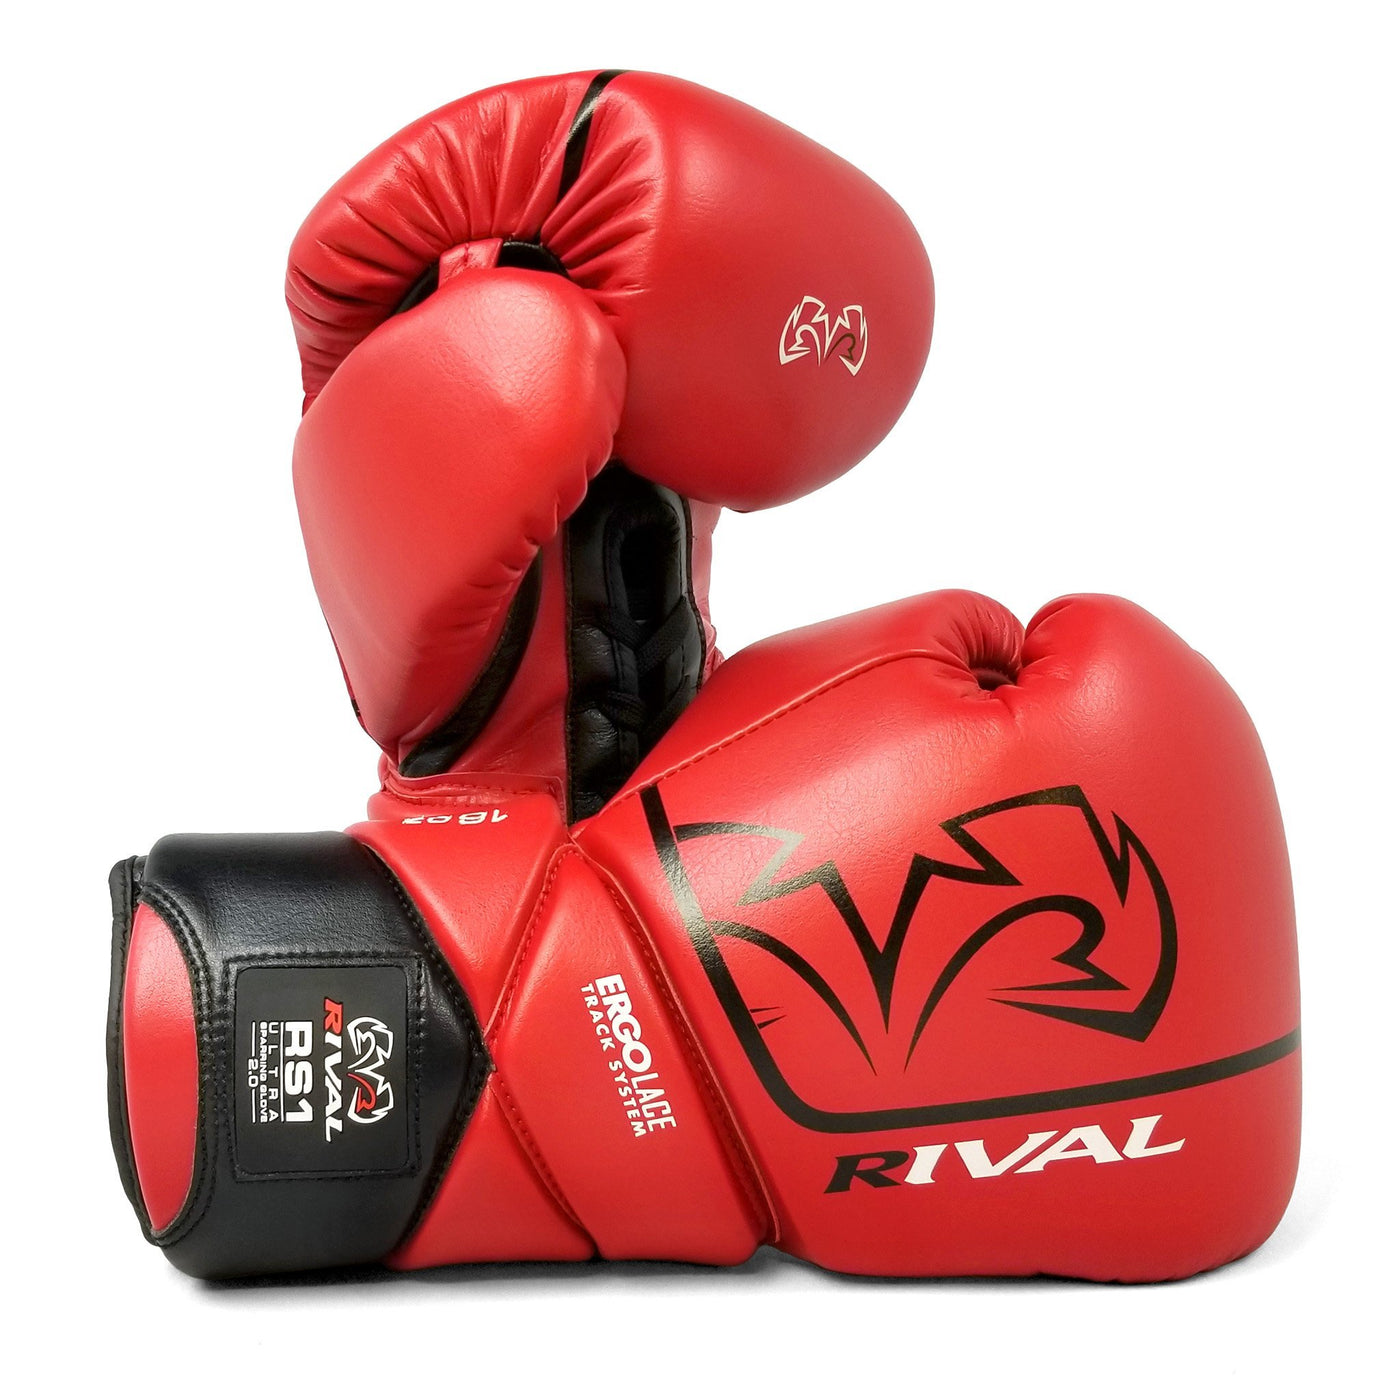 Blue Rival Boxing RS1 2.0 Ultra Pro Lace-Up Sparring Gloves